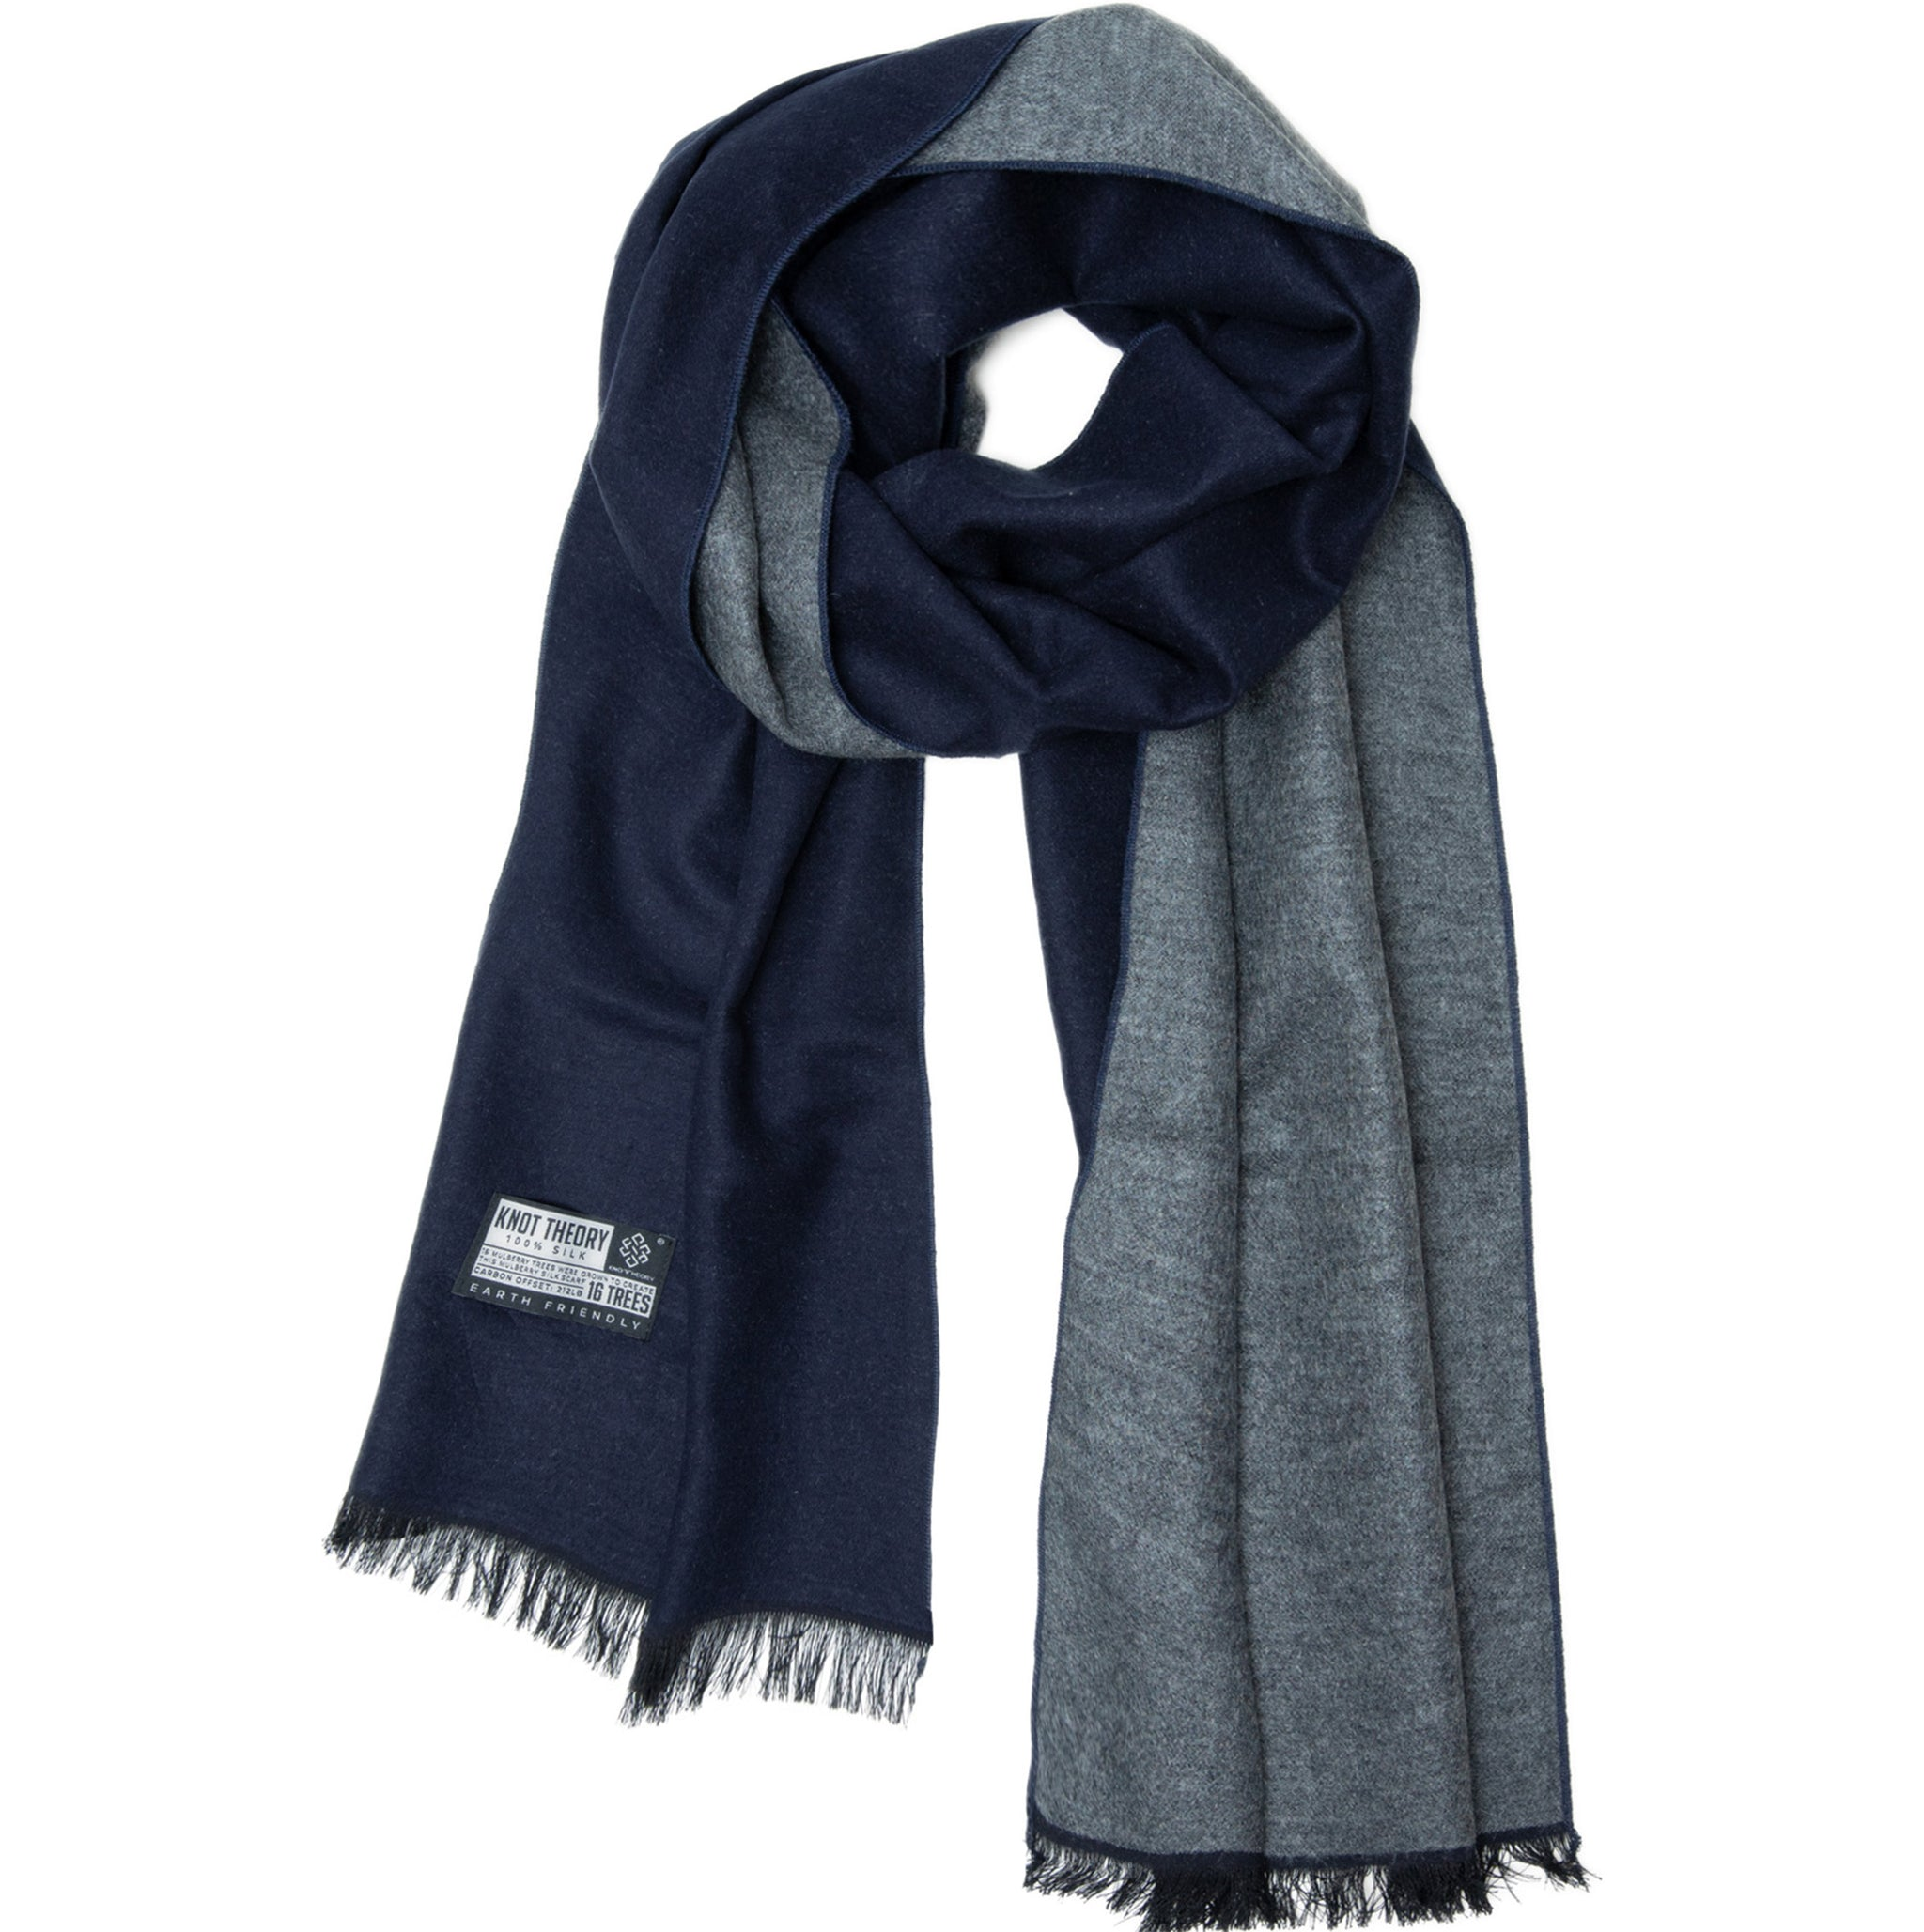 Blue Grey Eco Silk Scarf - Softer than Cashmere 100% Silk